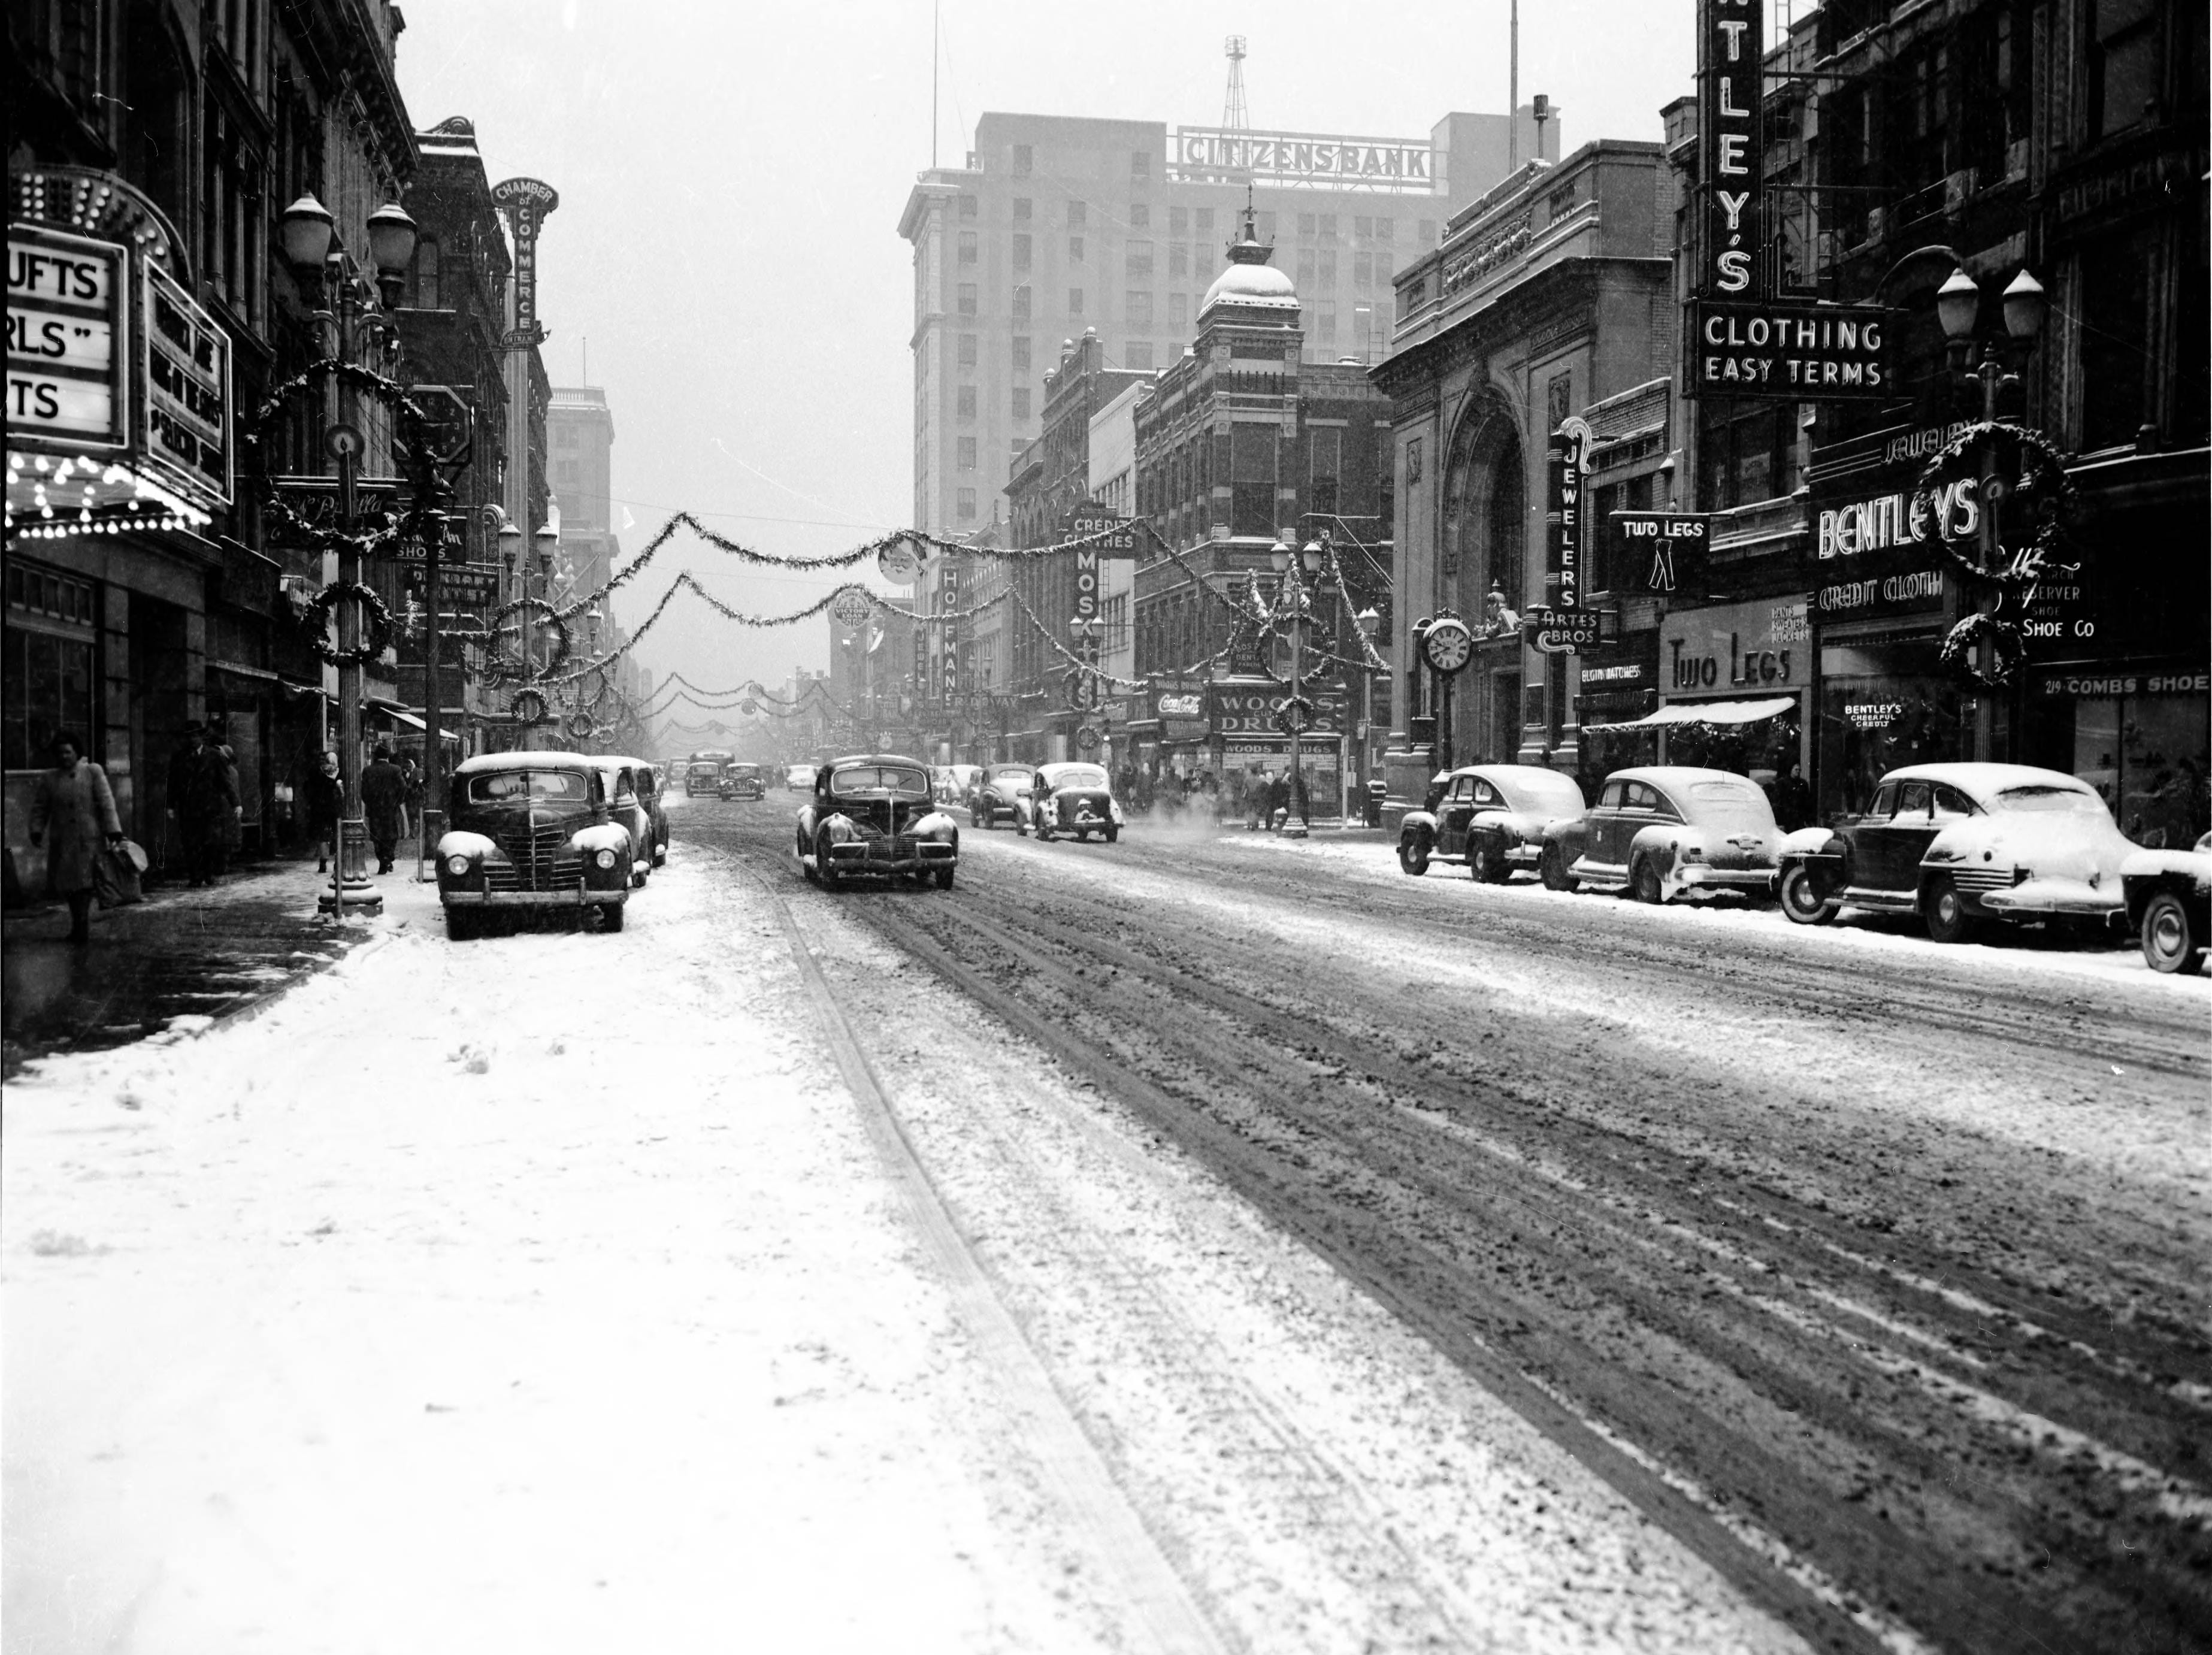 200-300 blocks of Main St., with snow on the ground, Christmas decorations, and an ad for war bonds in 1945.